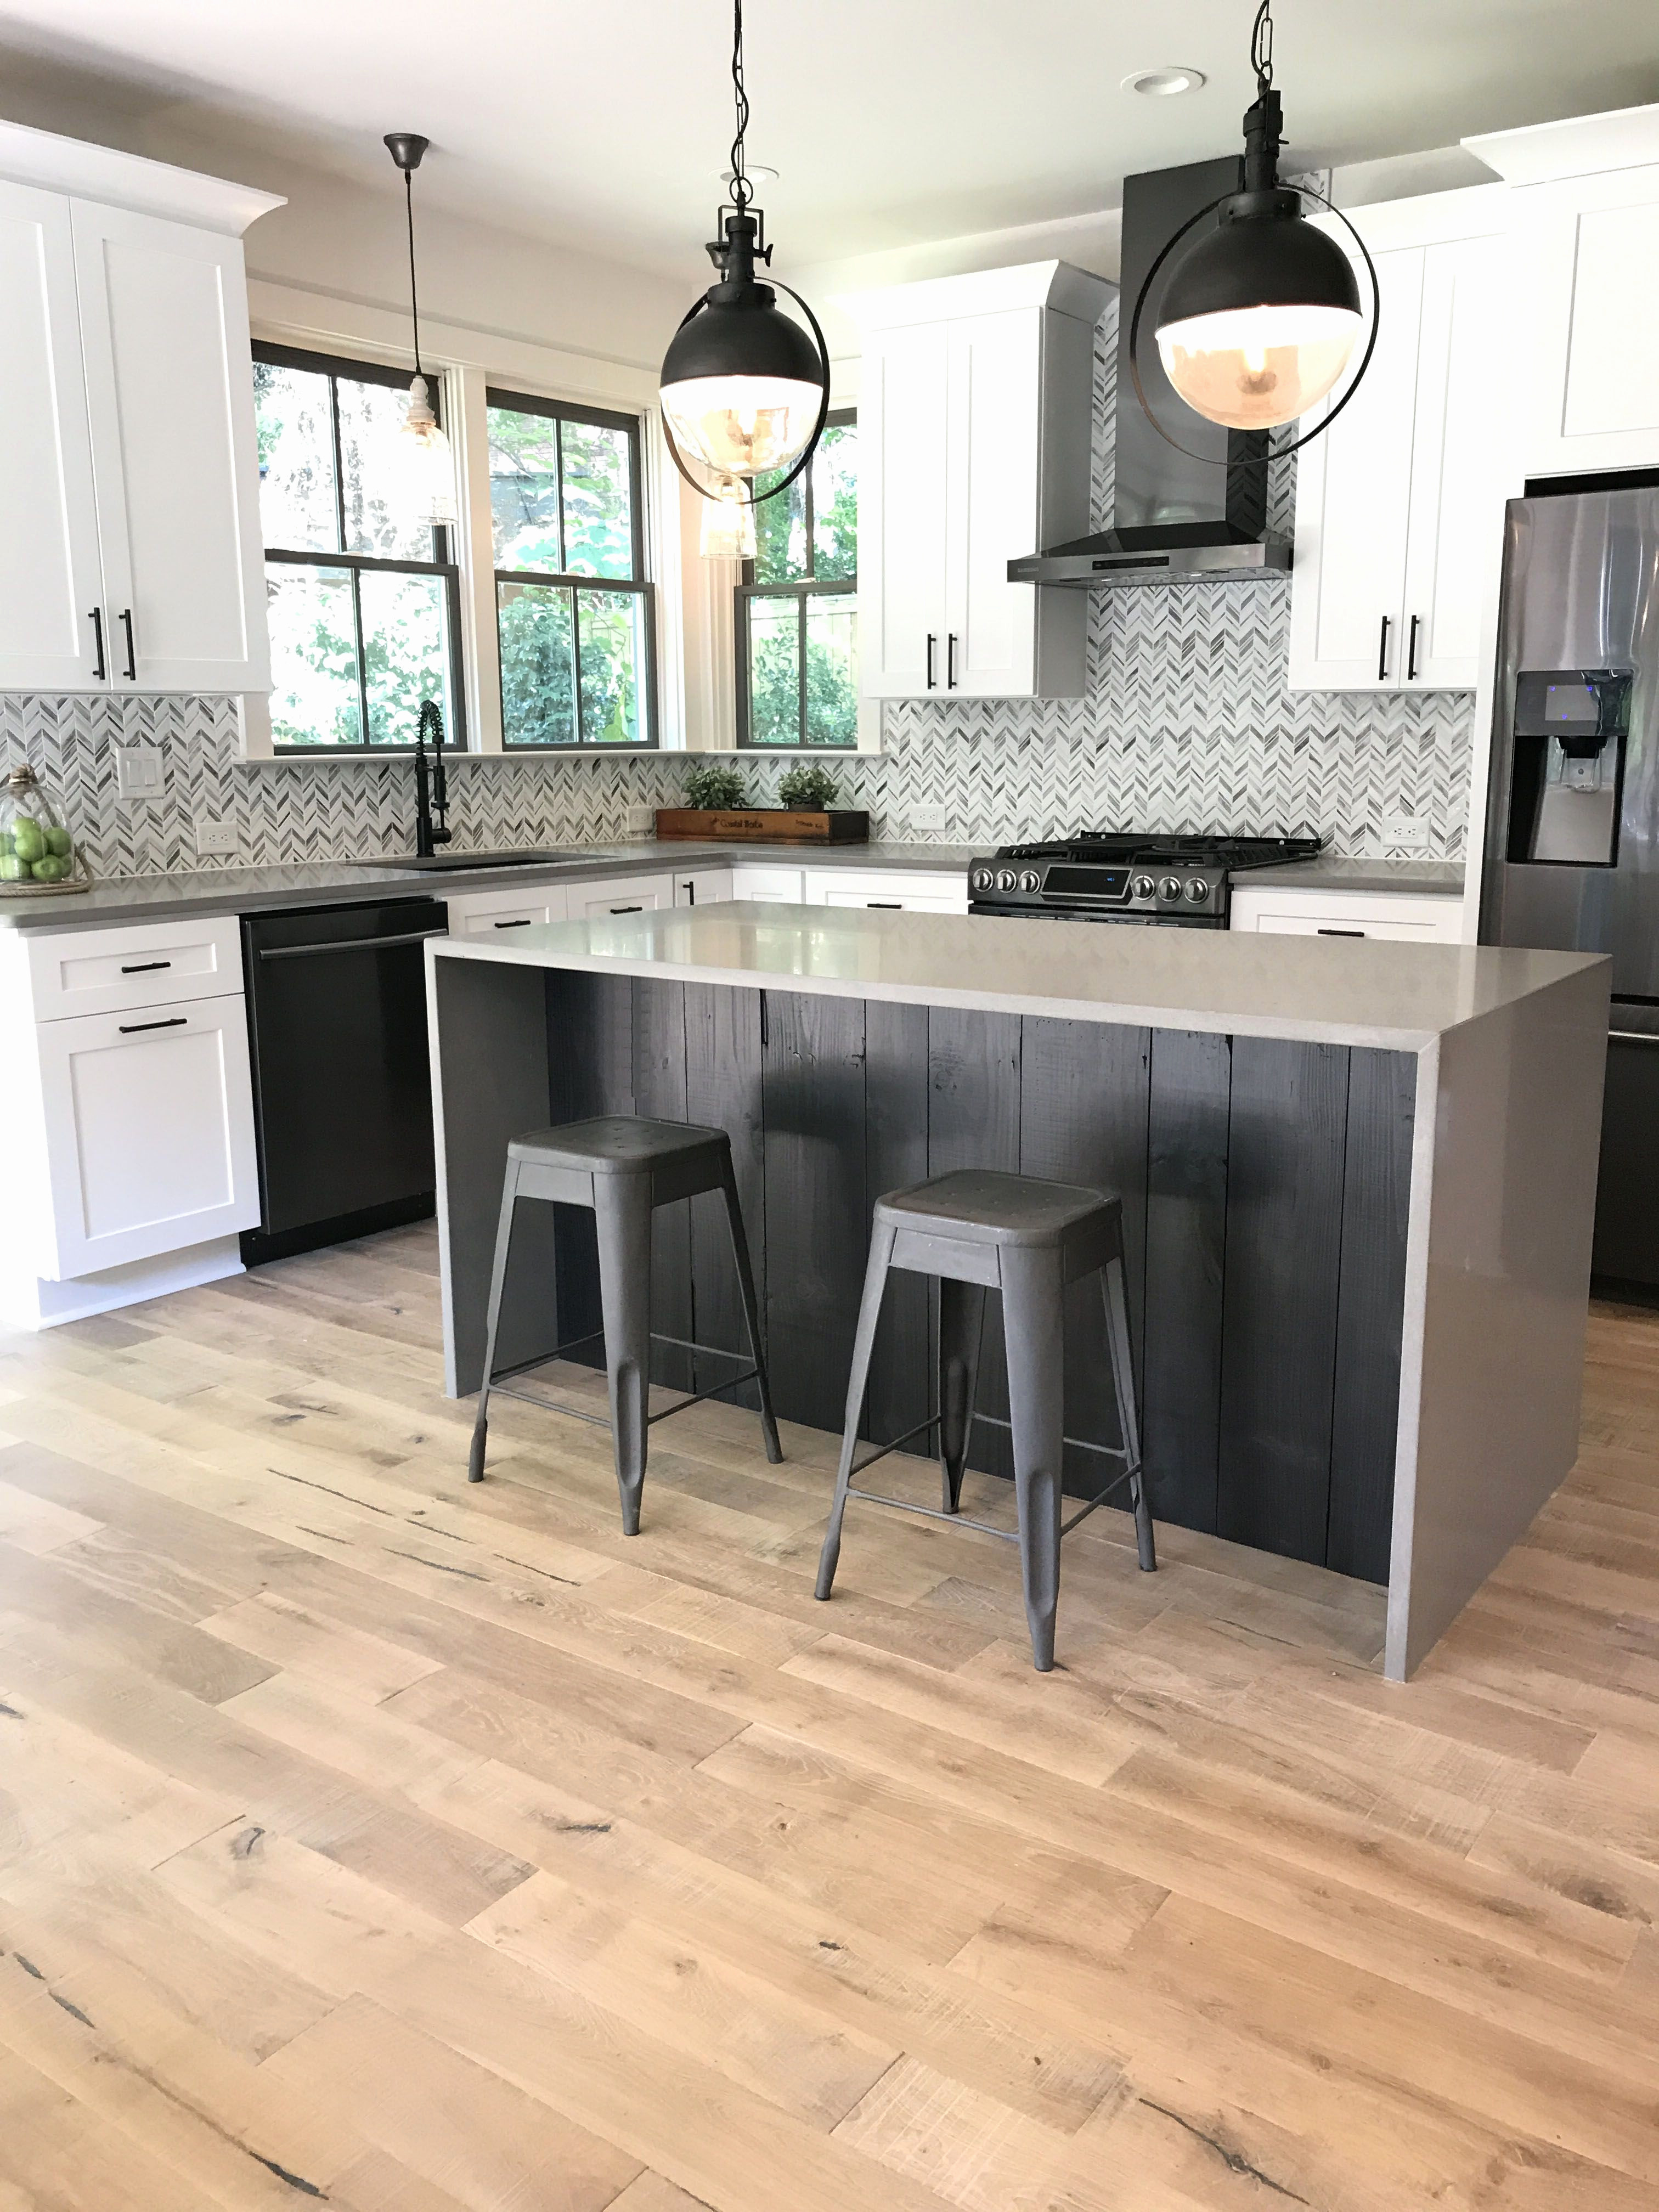 pictures of hardwood floors of pictures of laminate flooring in kitchen new hardwood flooring fresh in pictures of laminate flooring in kitchen awesome remodel home storehouse planks drum white oak kitchen hardwood